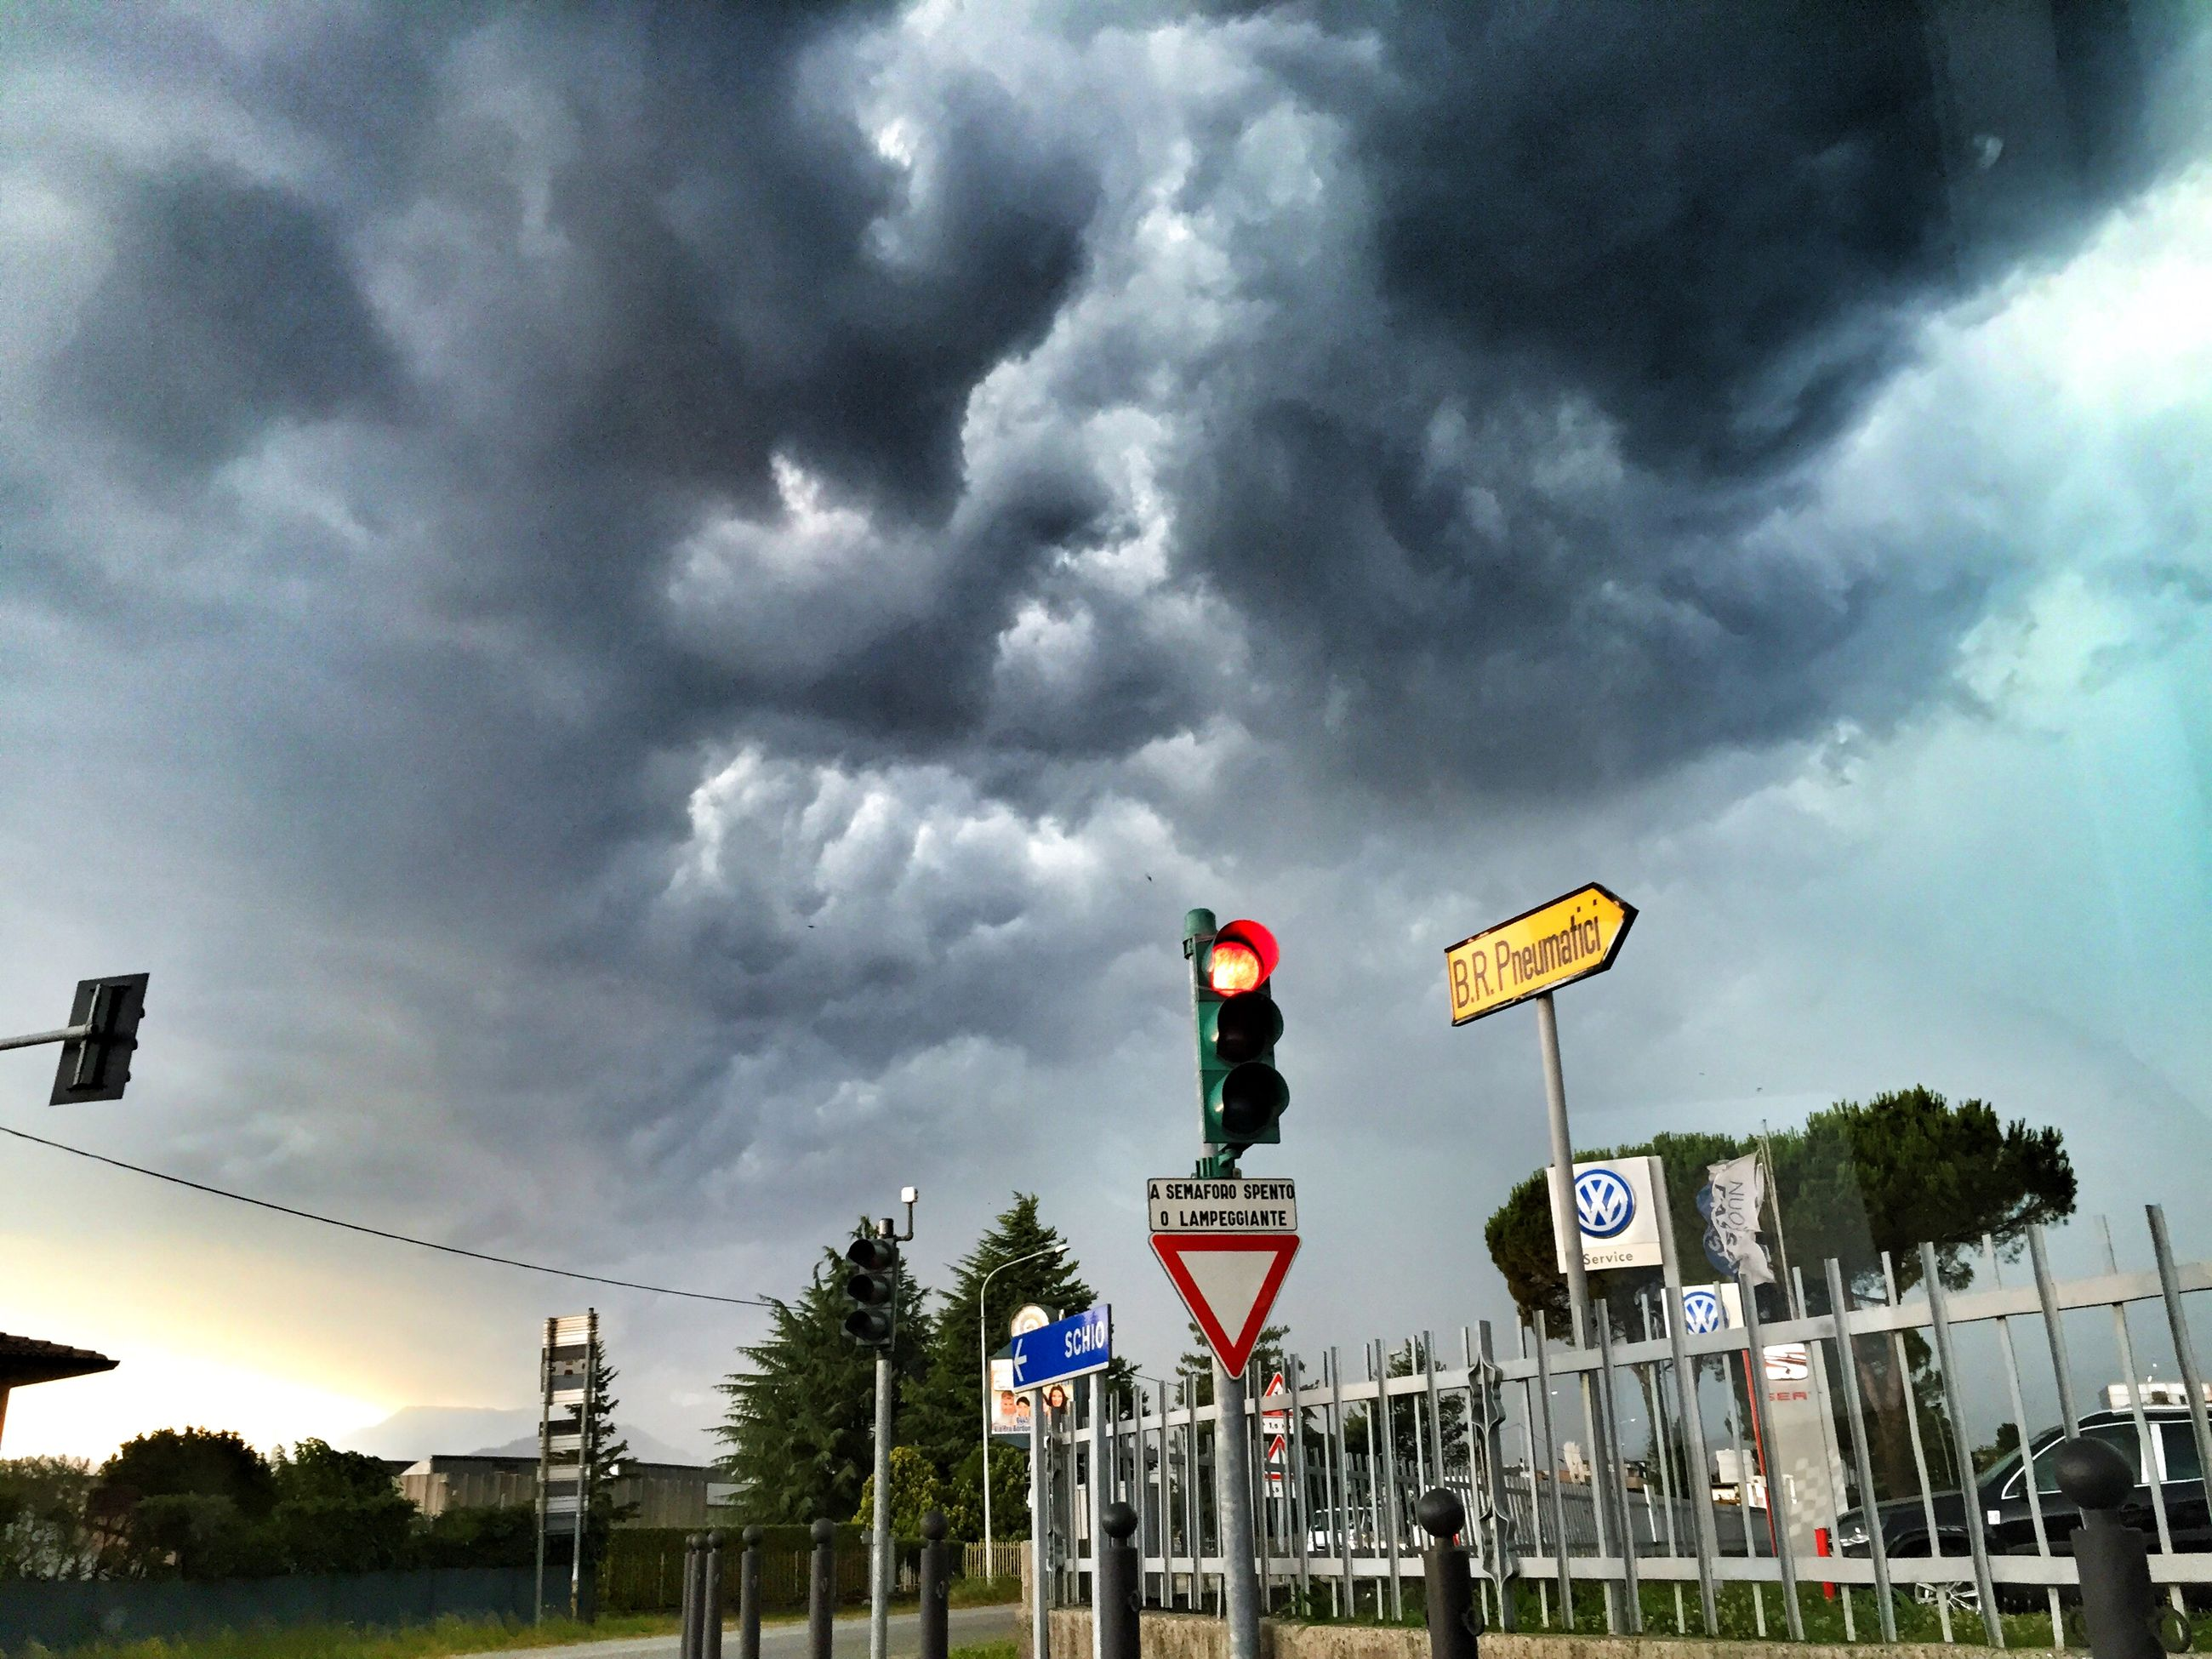 sky, cloud - sky, cloudy, cloud, weather, overcast, built structure, building exterior, low angle view, architecture, road sign, men, transportation, lifestyles, storm cloud, day, full length, outdoors